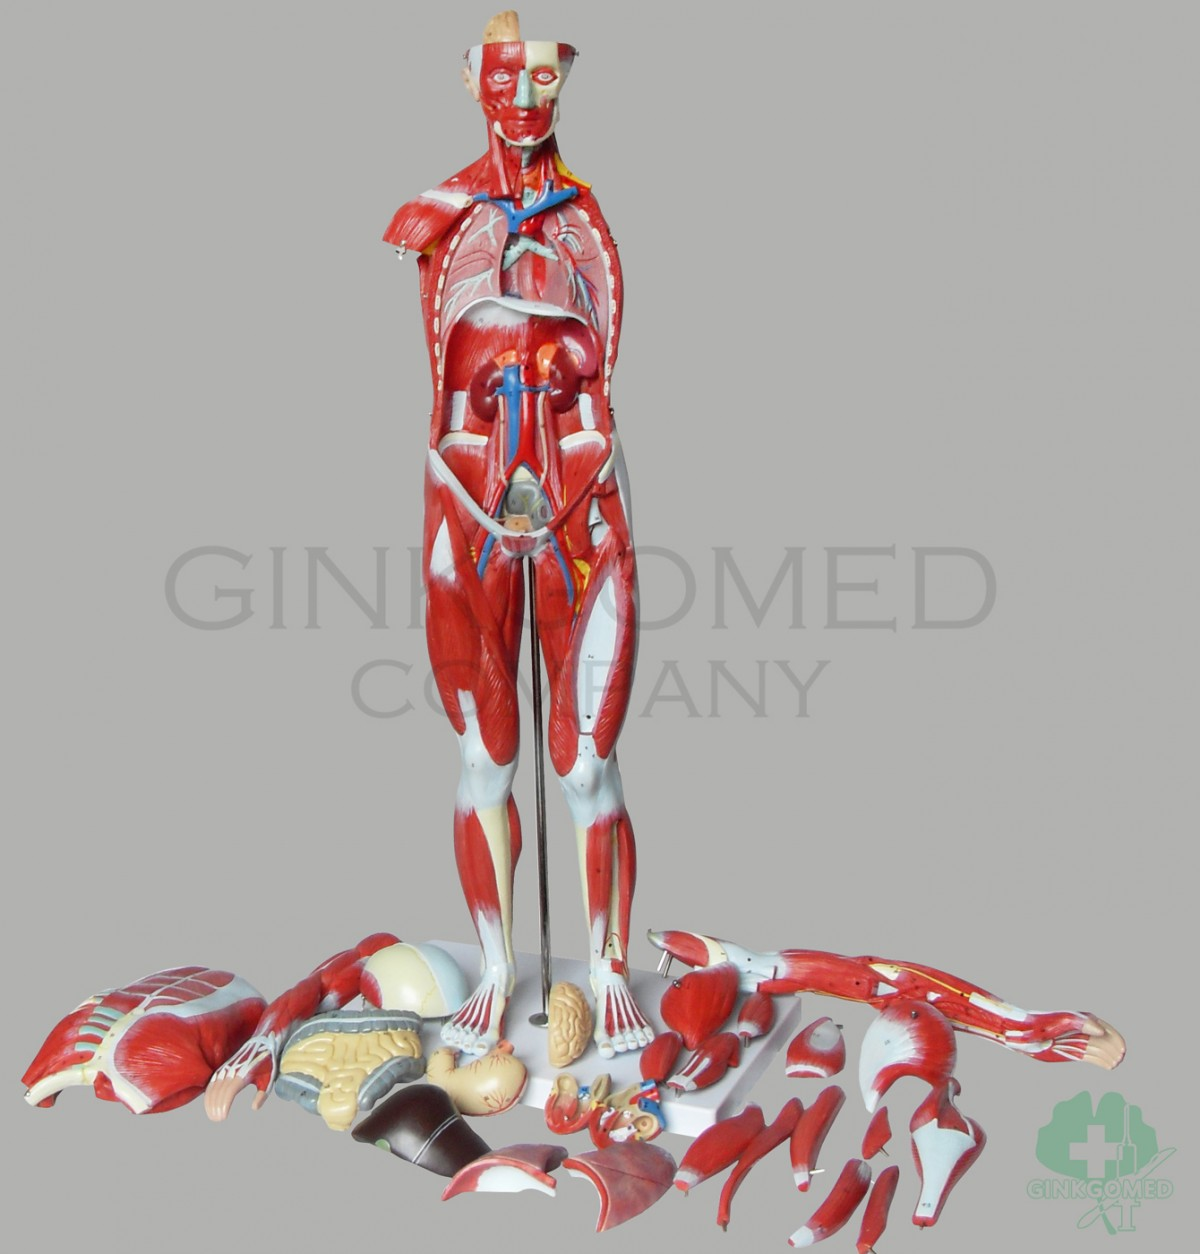 Gm 020001 Muscles Of Full Body Muscular System Teaching Models